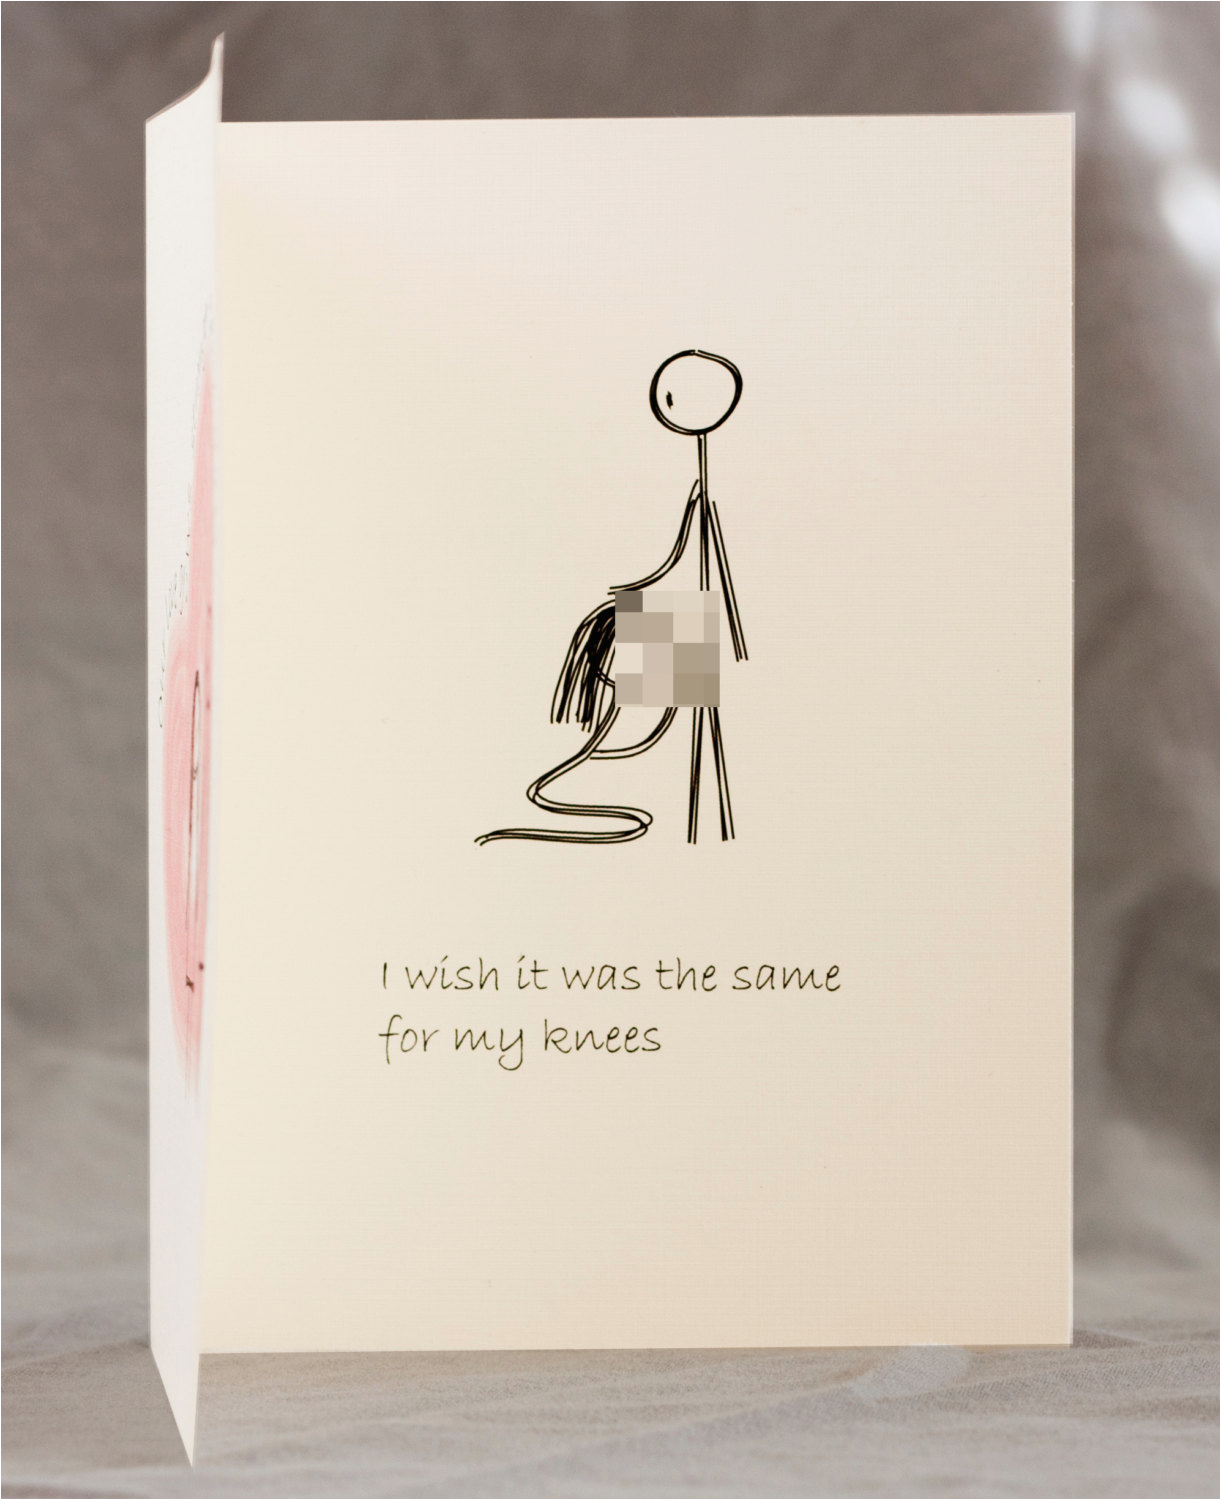 Sexy Birthday E Card Funny Mature Adult Dirty Naughty Cute Love Greeting Card for